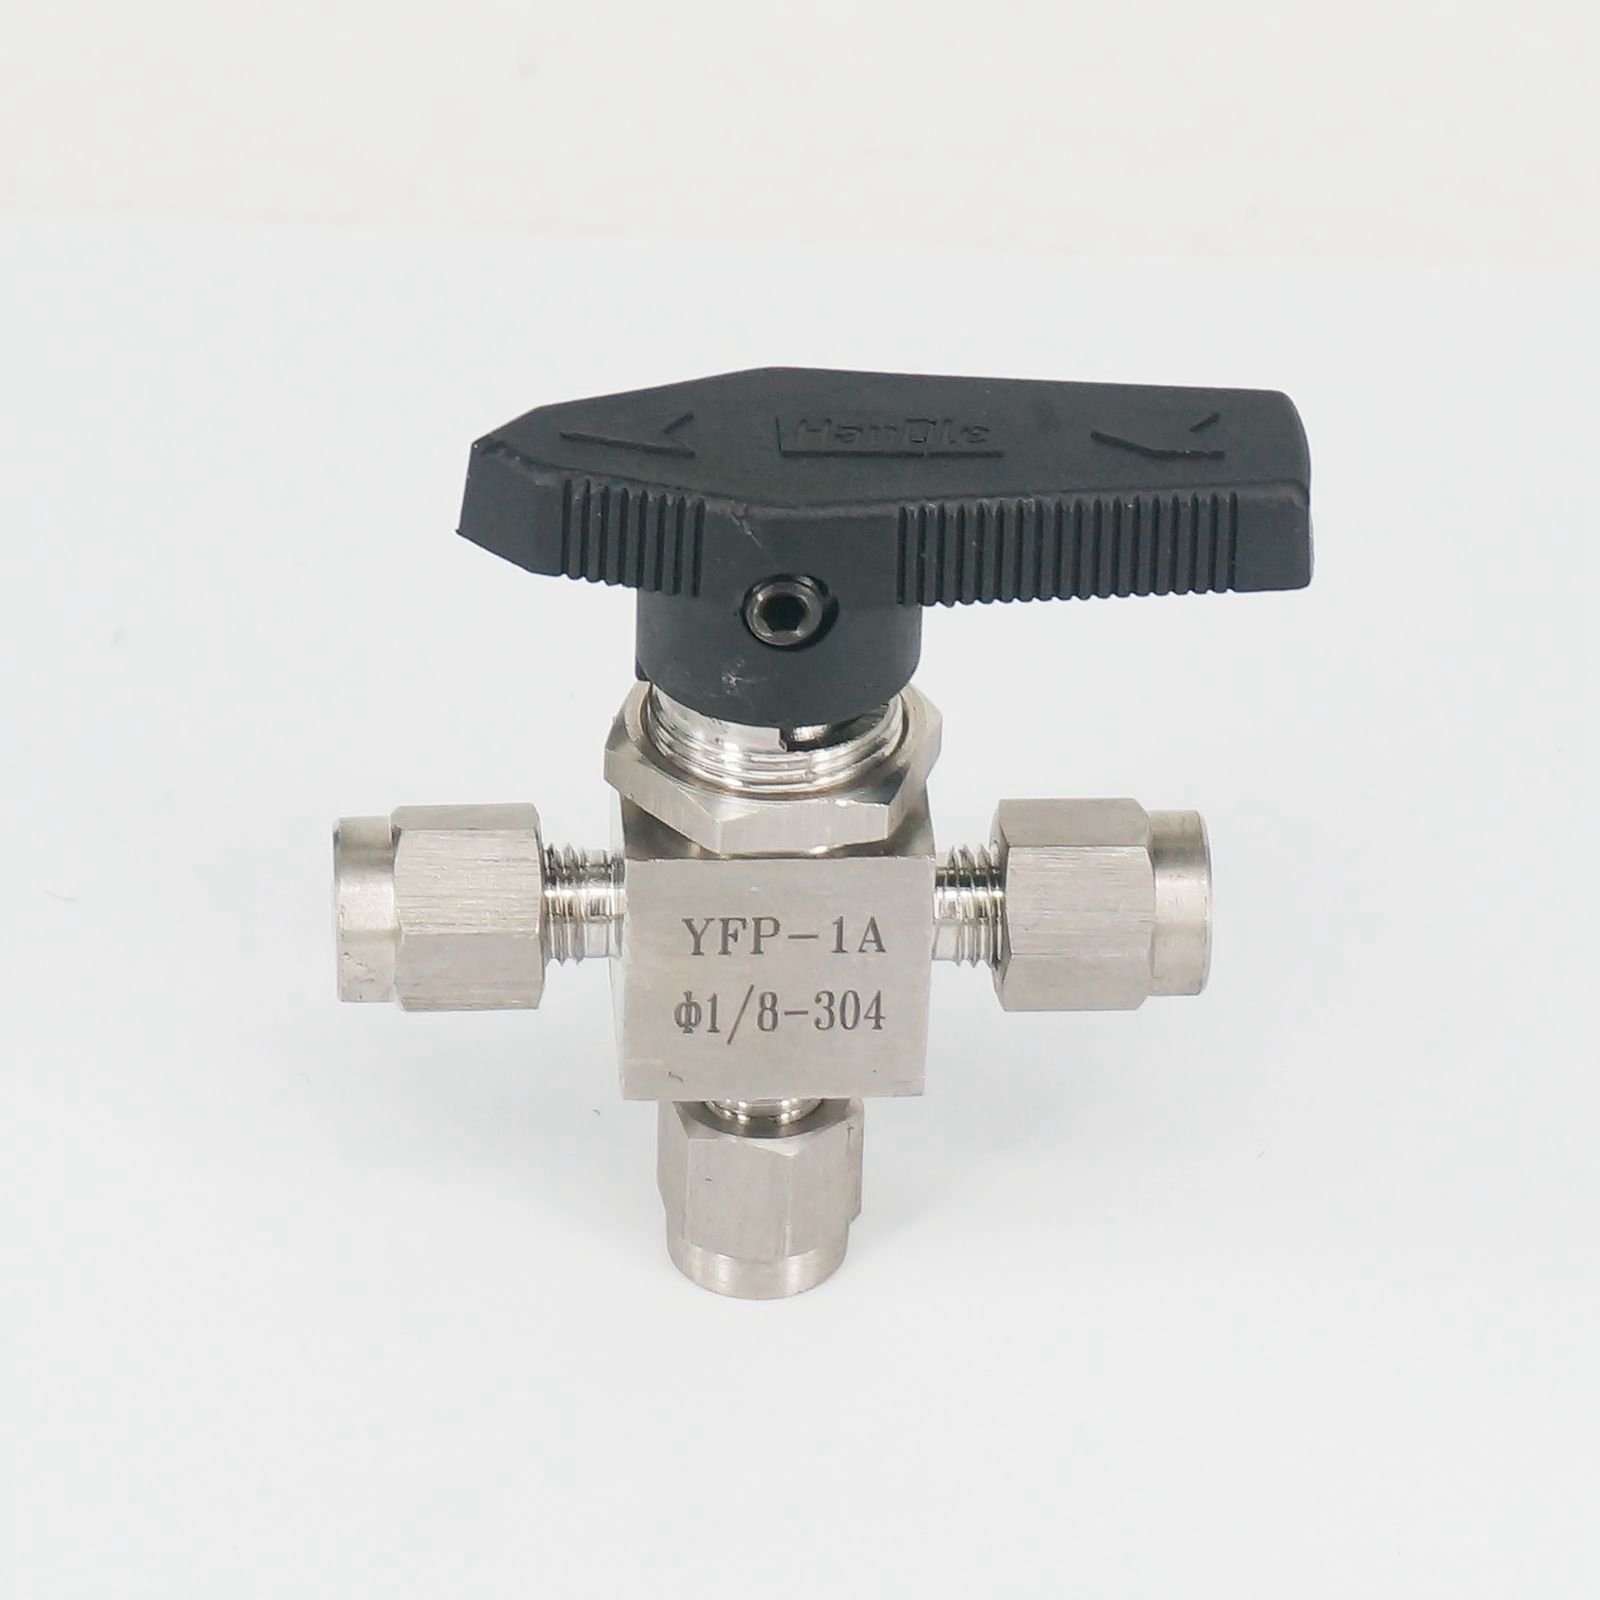 304 Stainless steel Tee 3 Ways Compression fitting shut off Ball Valve 915 PSI PN 6.4 Fit For 1/8